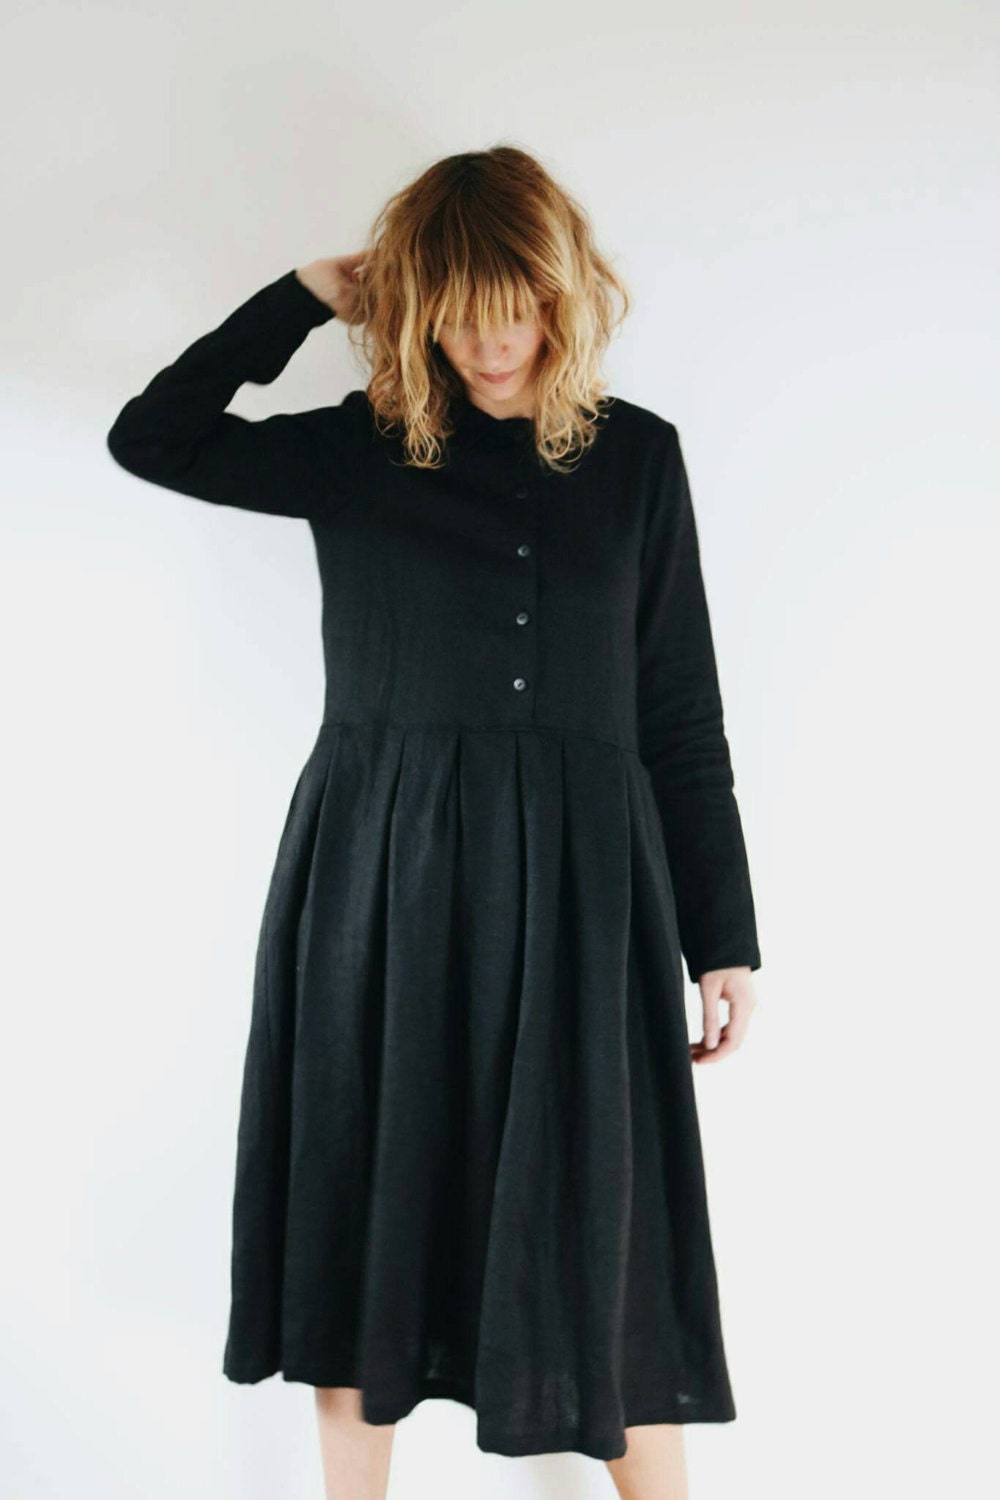 Black Linen Dress Linen Dress Midi Length Linen Dress